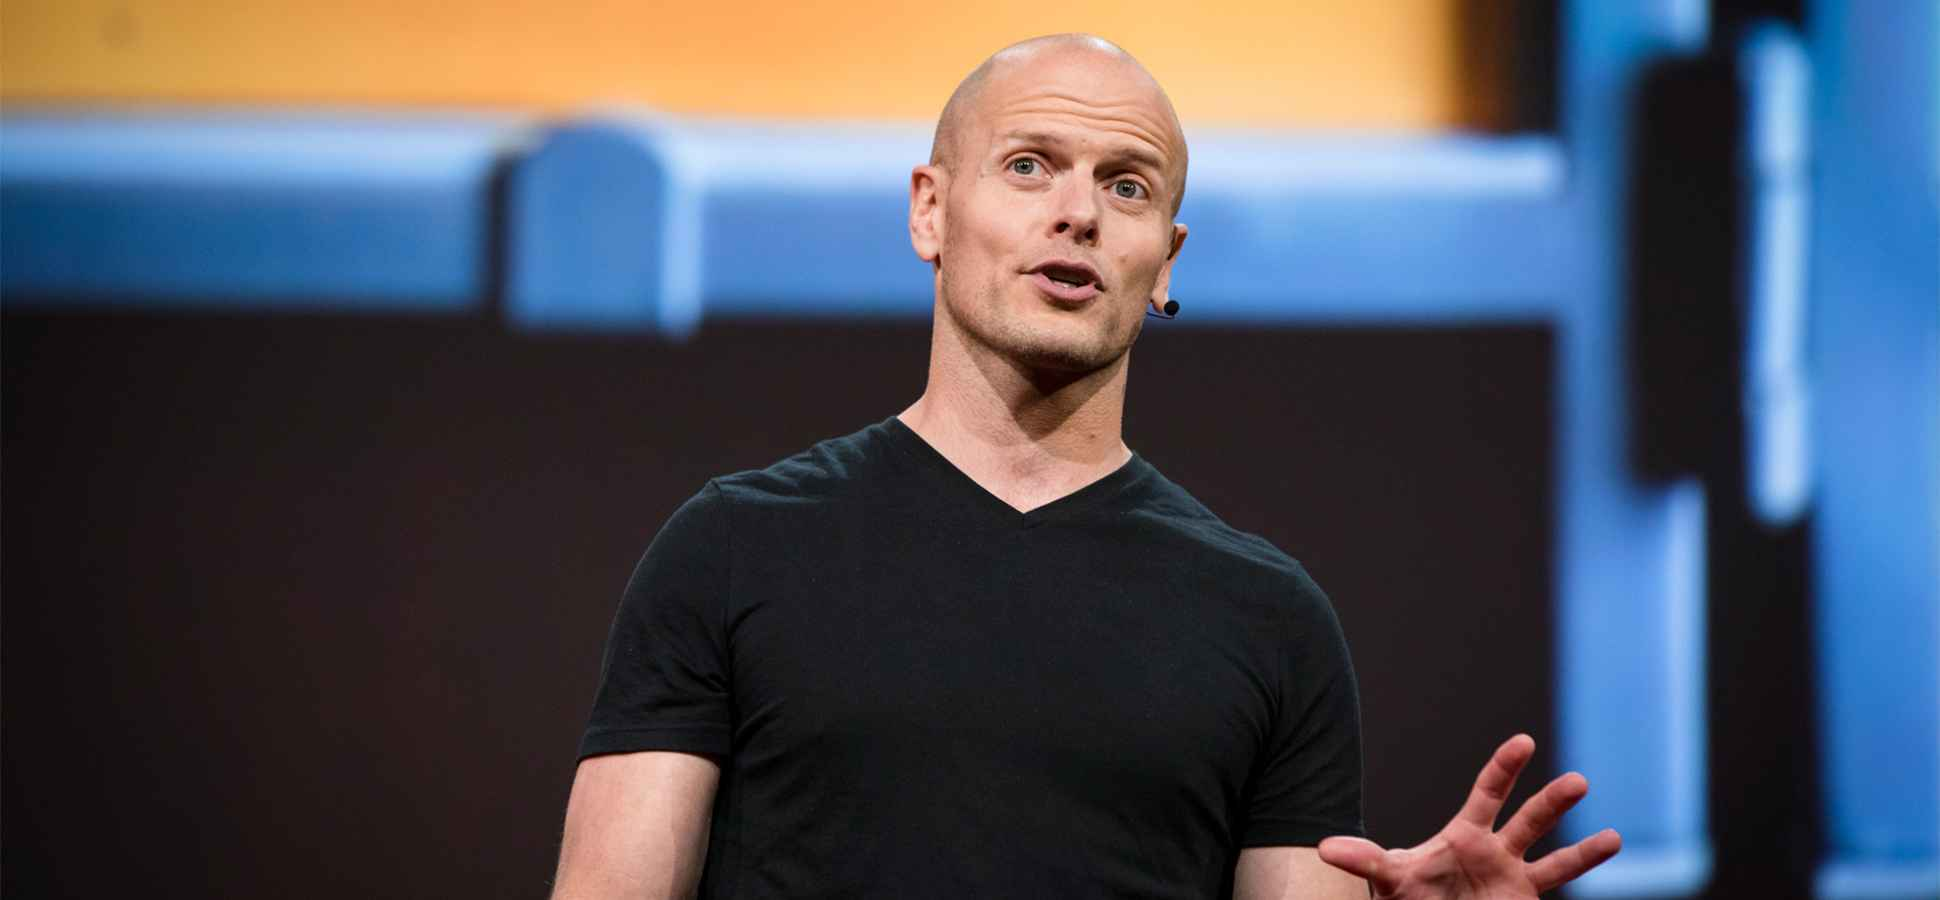 The 9 Most Inspiring TED Talks of 2017